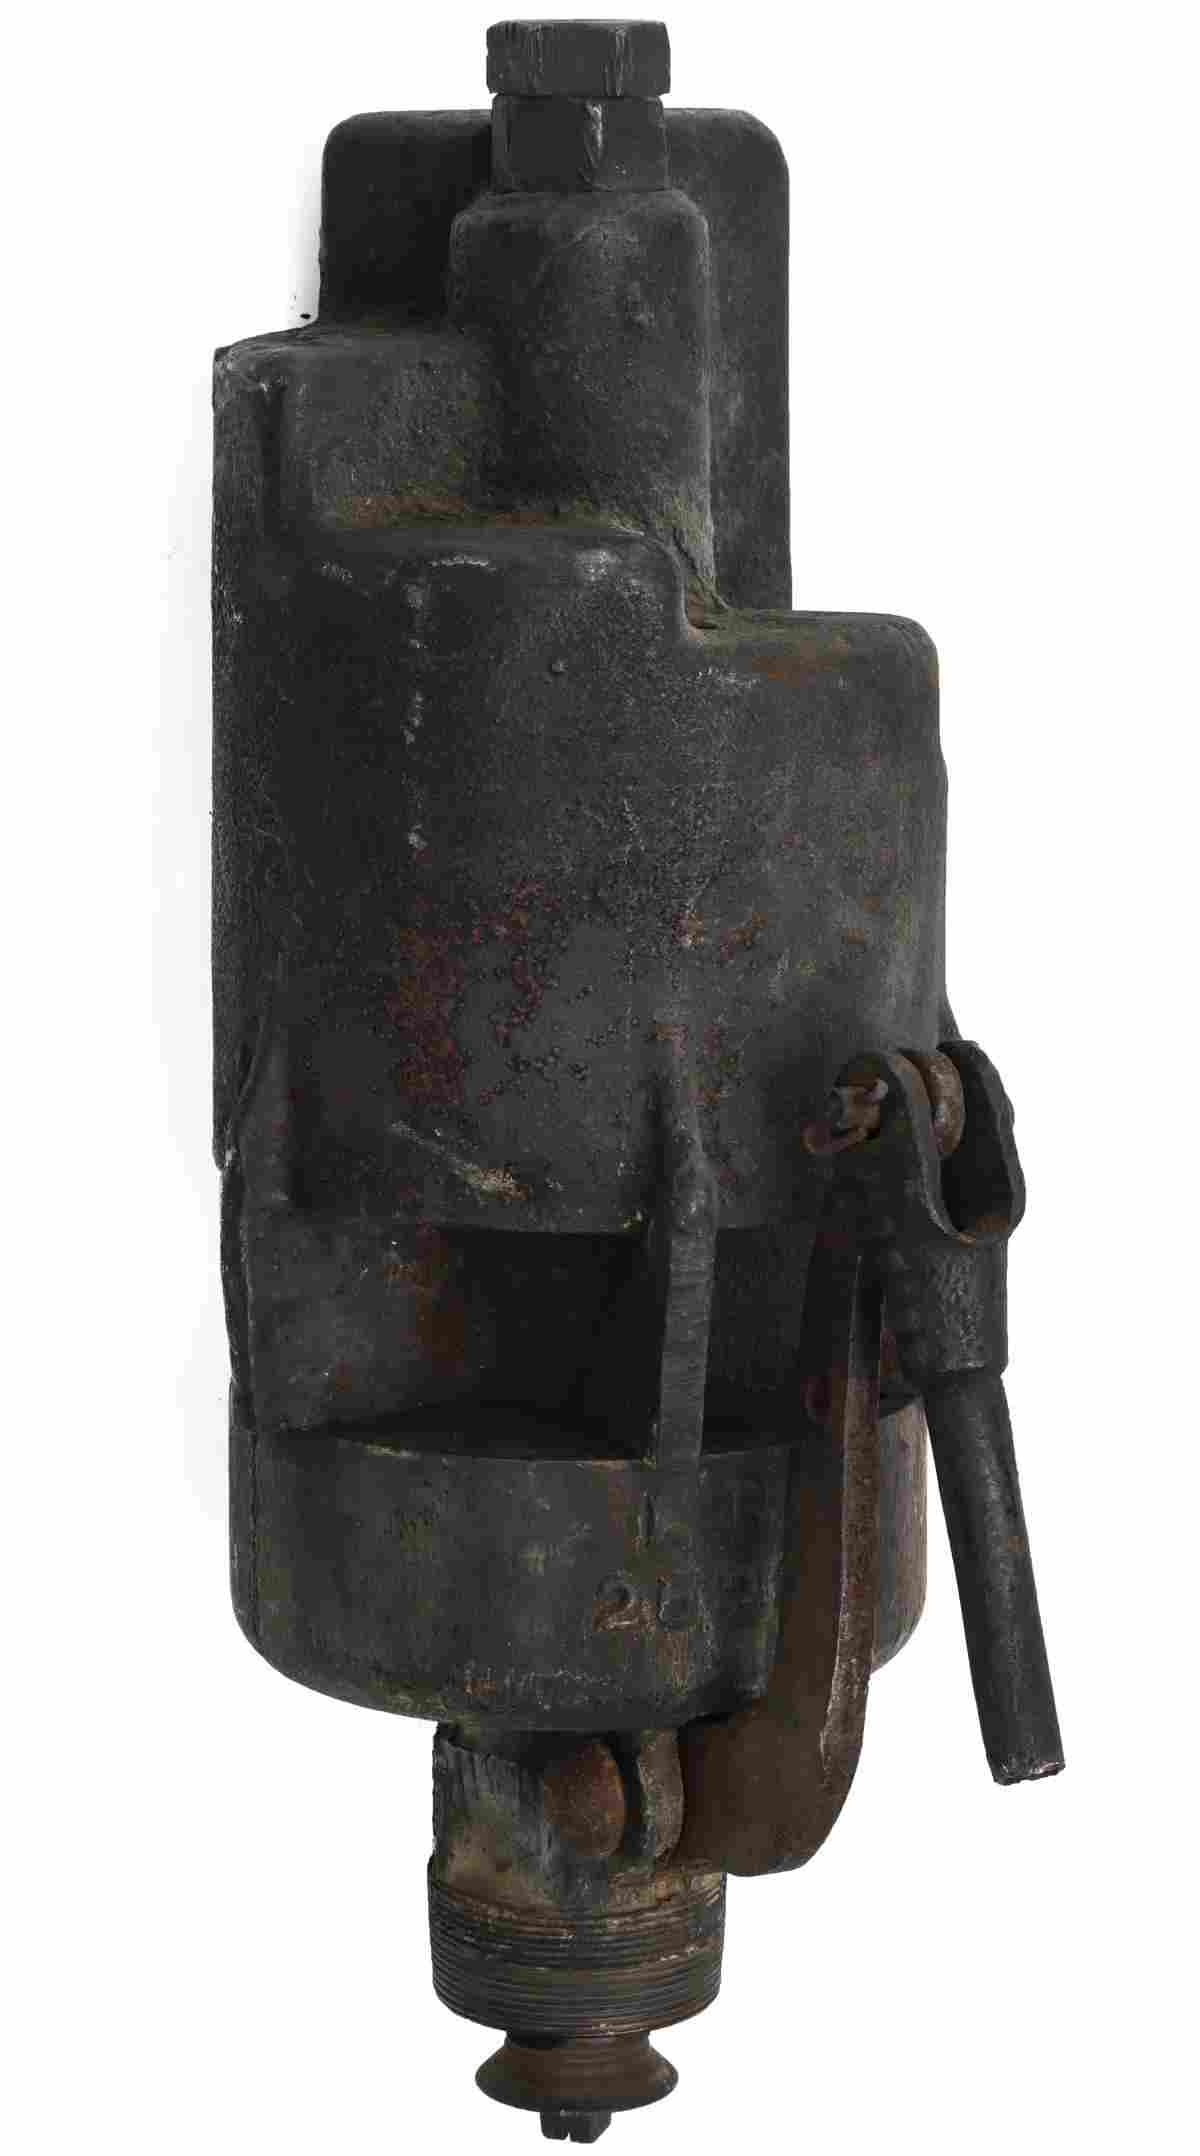 A FIVE CHIME LOCOMOTIVE WHISTLE ATTR NORTHERN PACIFIC